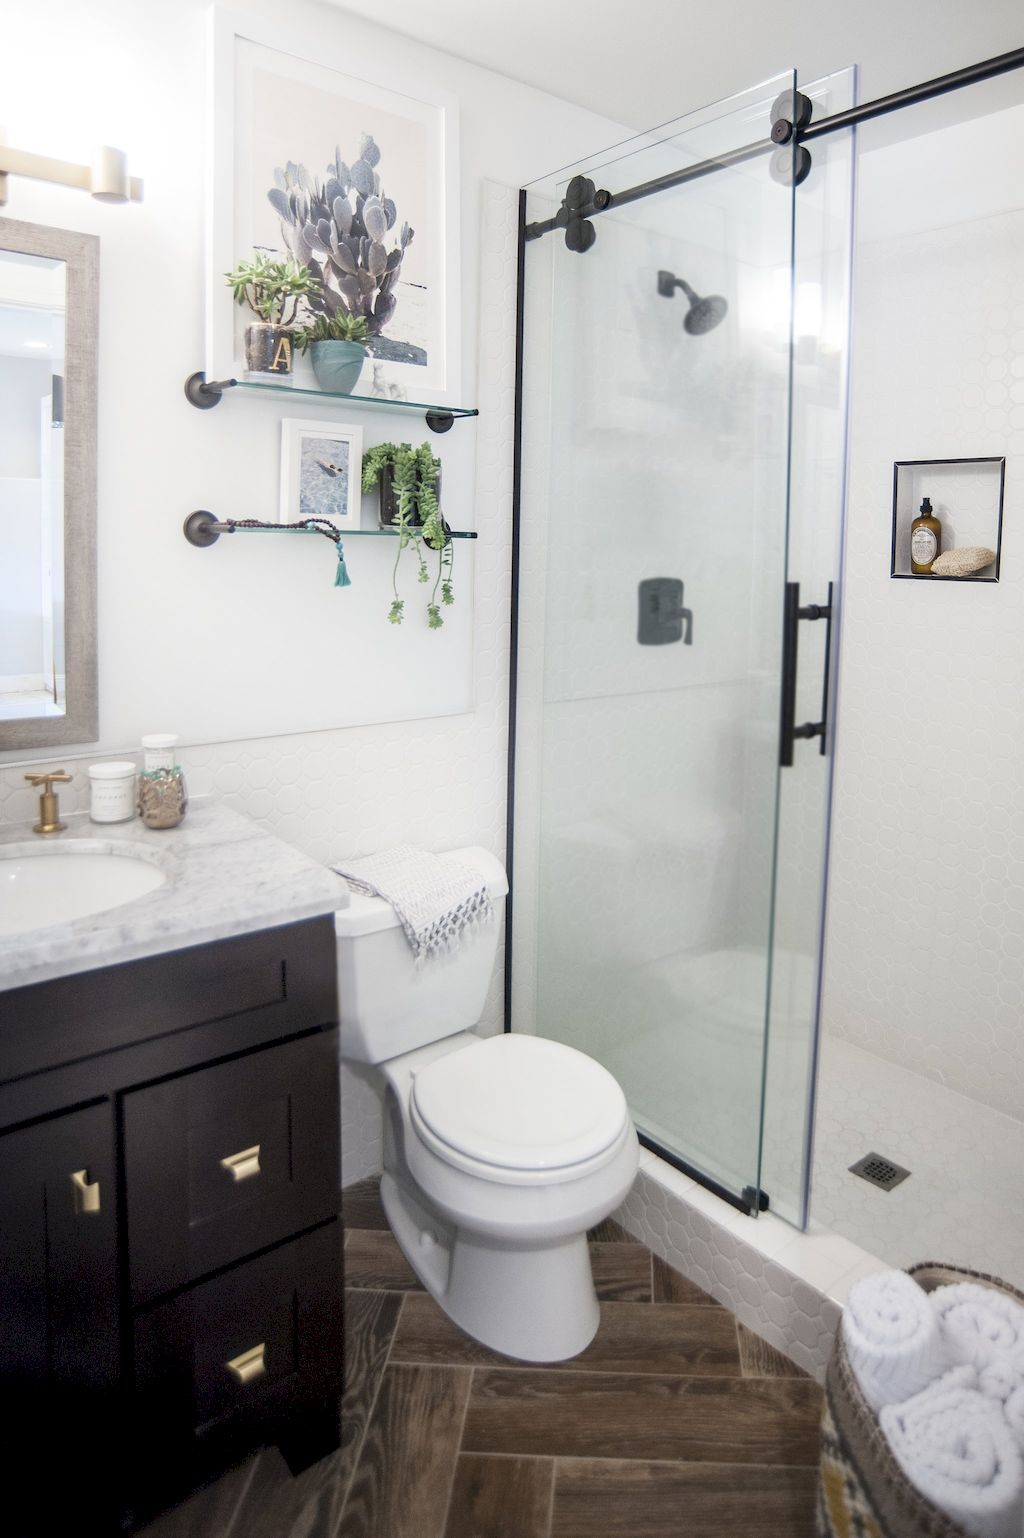 small master bathroom remodel ideas. See Popsugar s Home Editor stunning small bathroom remodel designed  entirely online Check out the before and after transformation 55 Cool Small Master Bathroom Remodel Ideas bathrooms